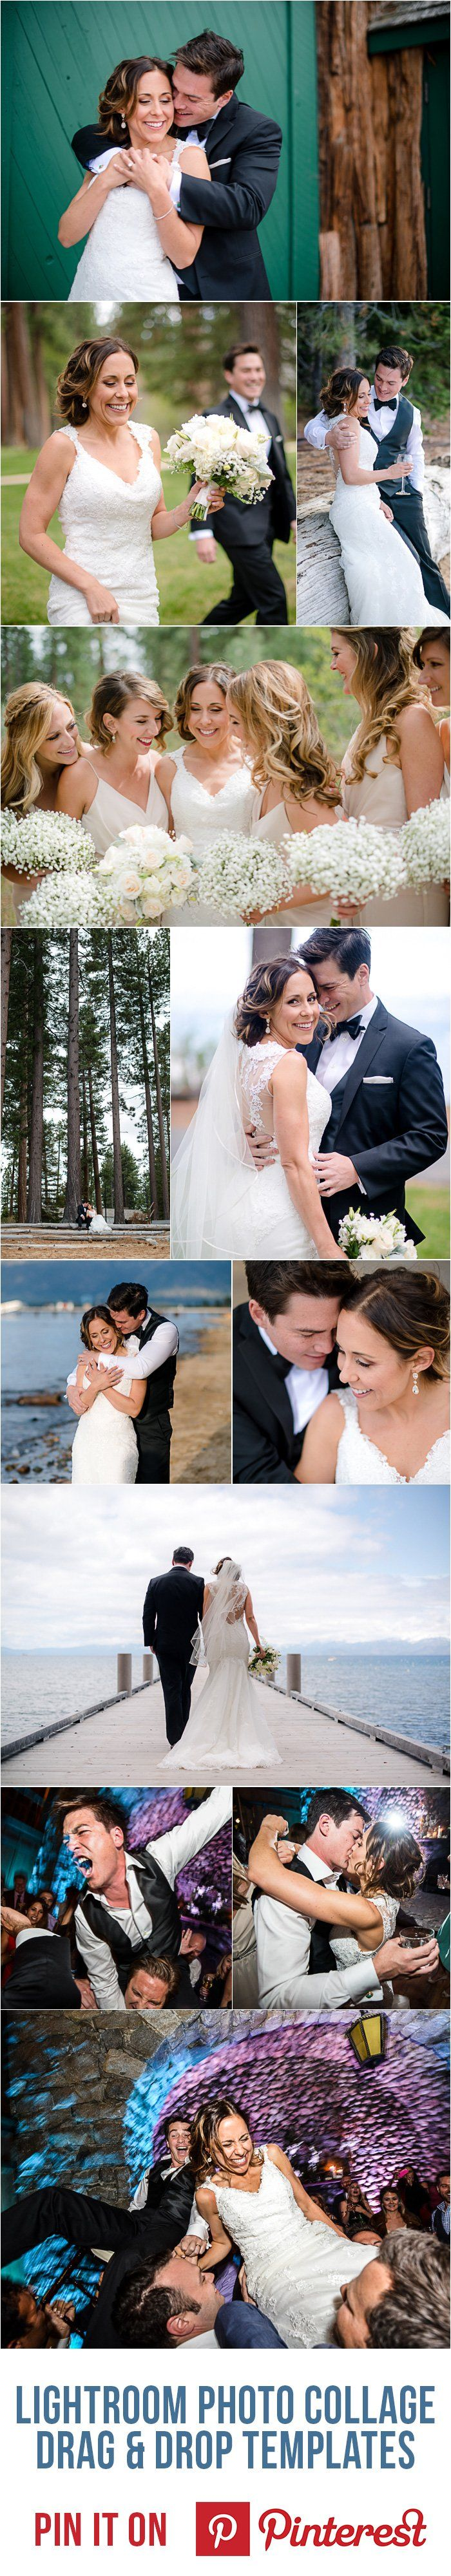 Lightroom Photo Collage Templates to Make Designing Collages as Simple as Drag & Drop!